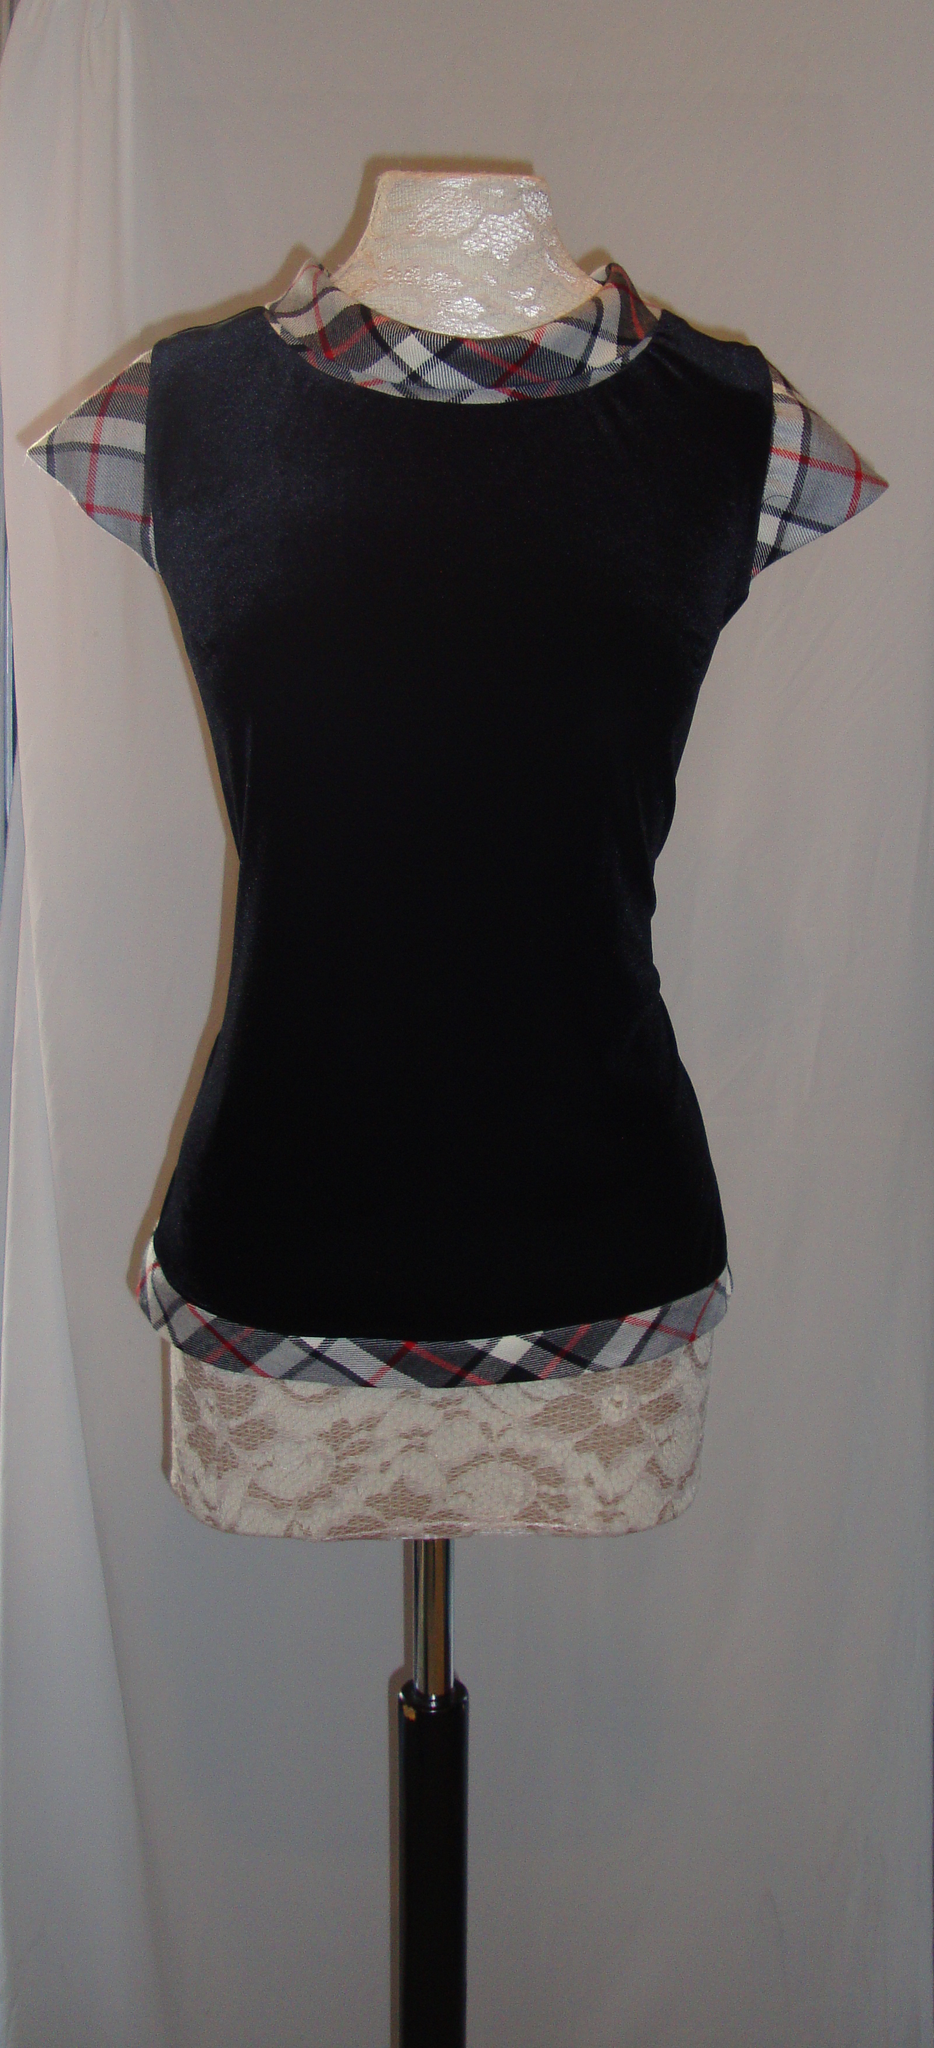 Maggie velvet top with Thomson tartan trim